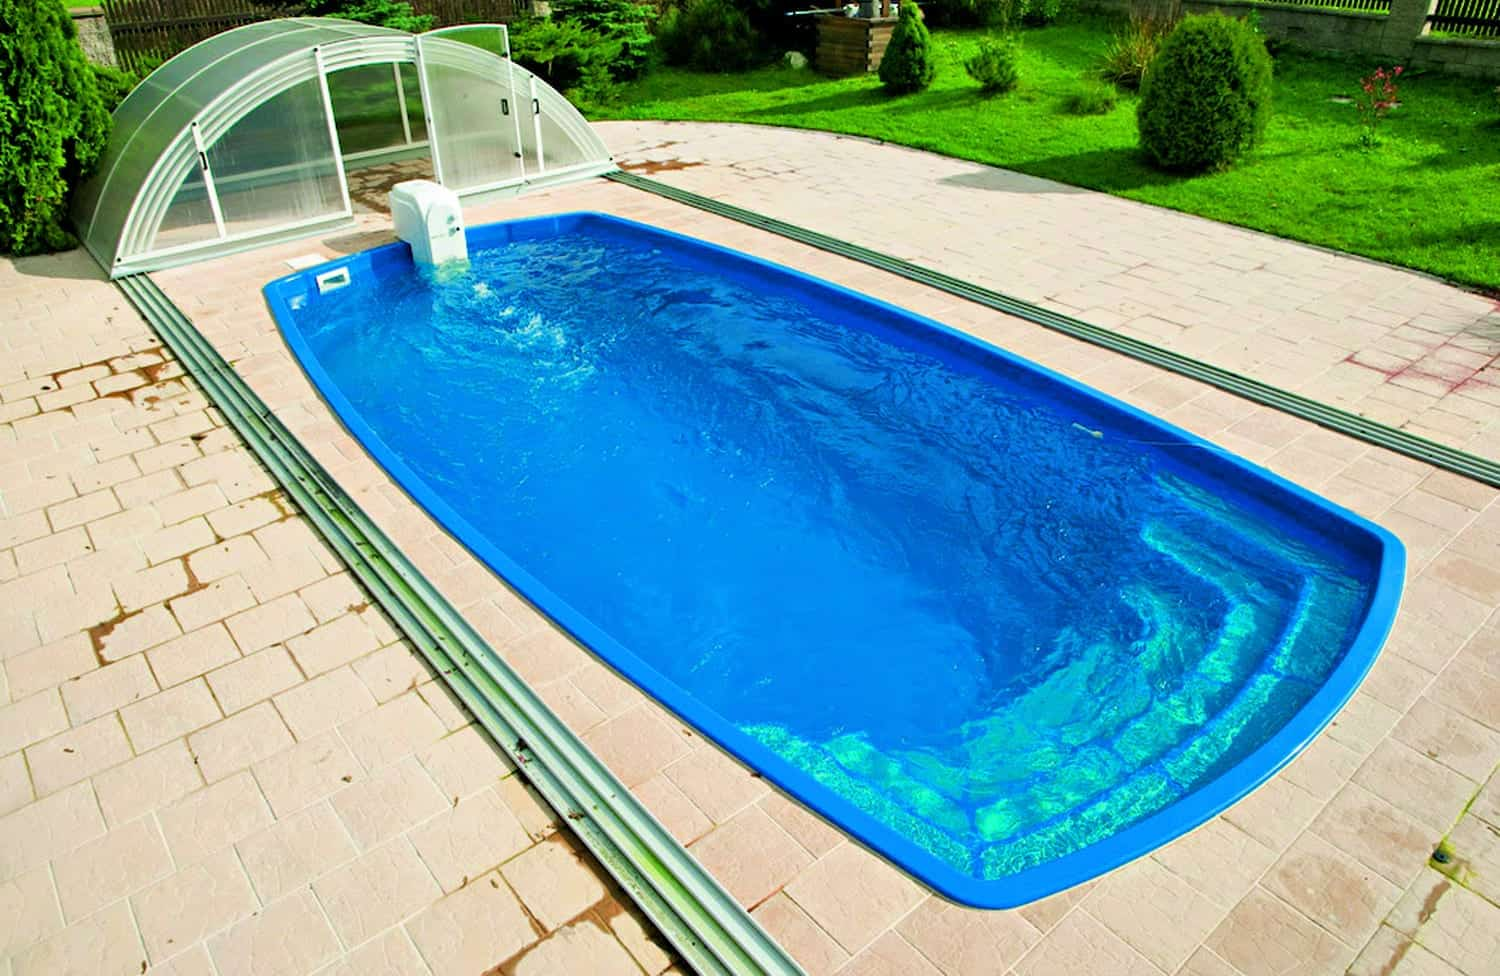 Orion 7.50m X 3.50m X 1.50m One Piece Fibreglass Swimming Pool